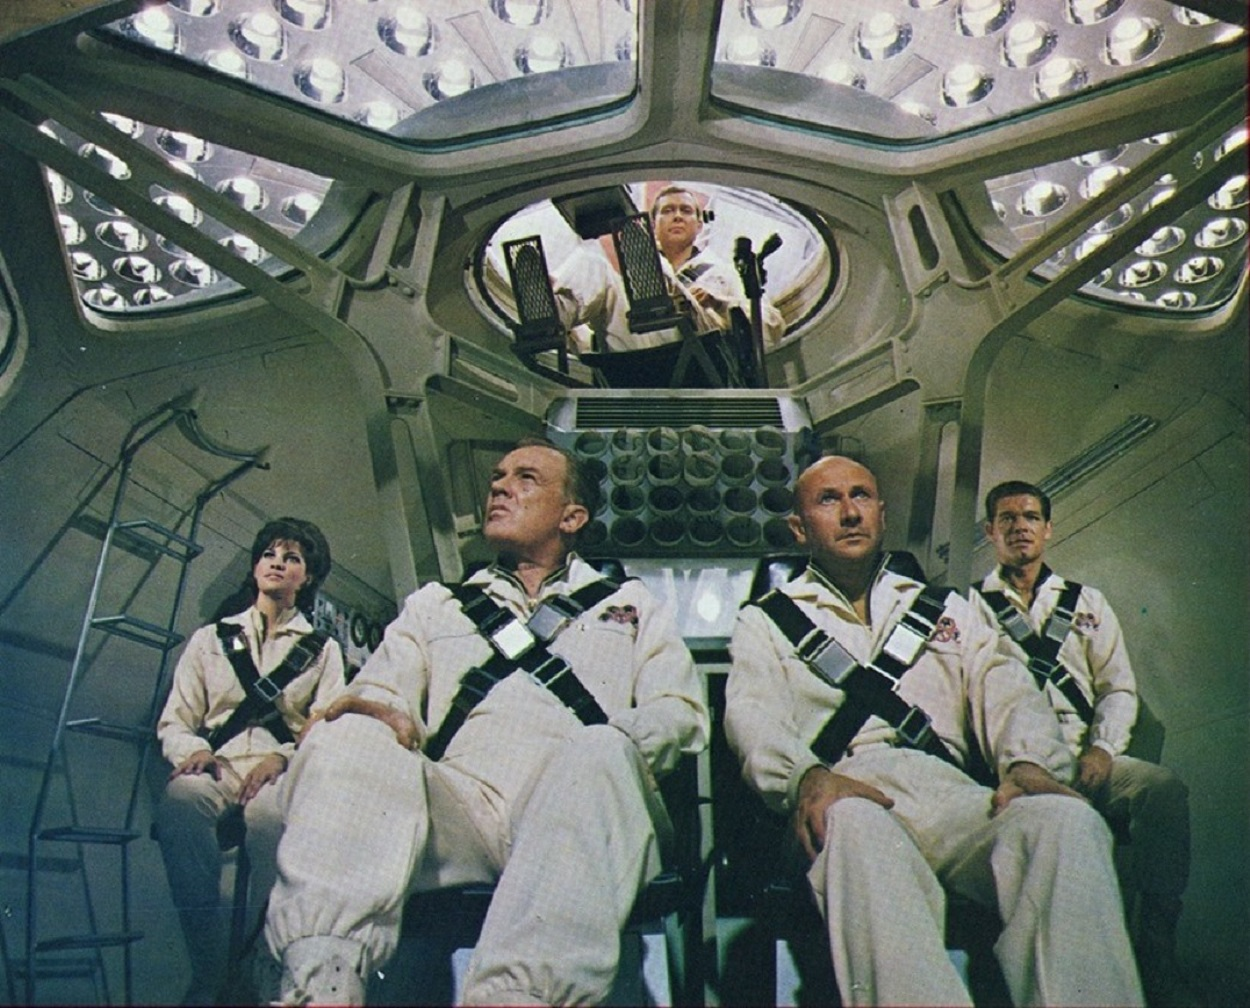 The submarine crew - Raquel Welch, Arthur Kennedy, Donald Pleasence, Stephen Boyd and William Redfield in Fantastic Voyage (1966)